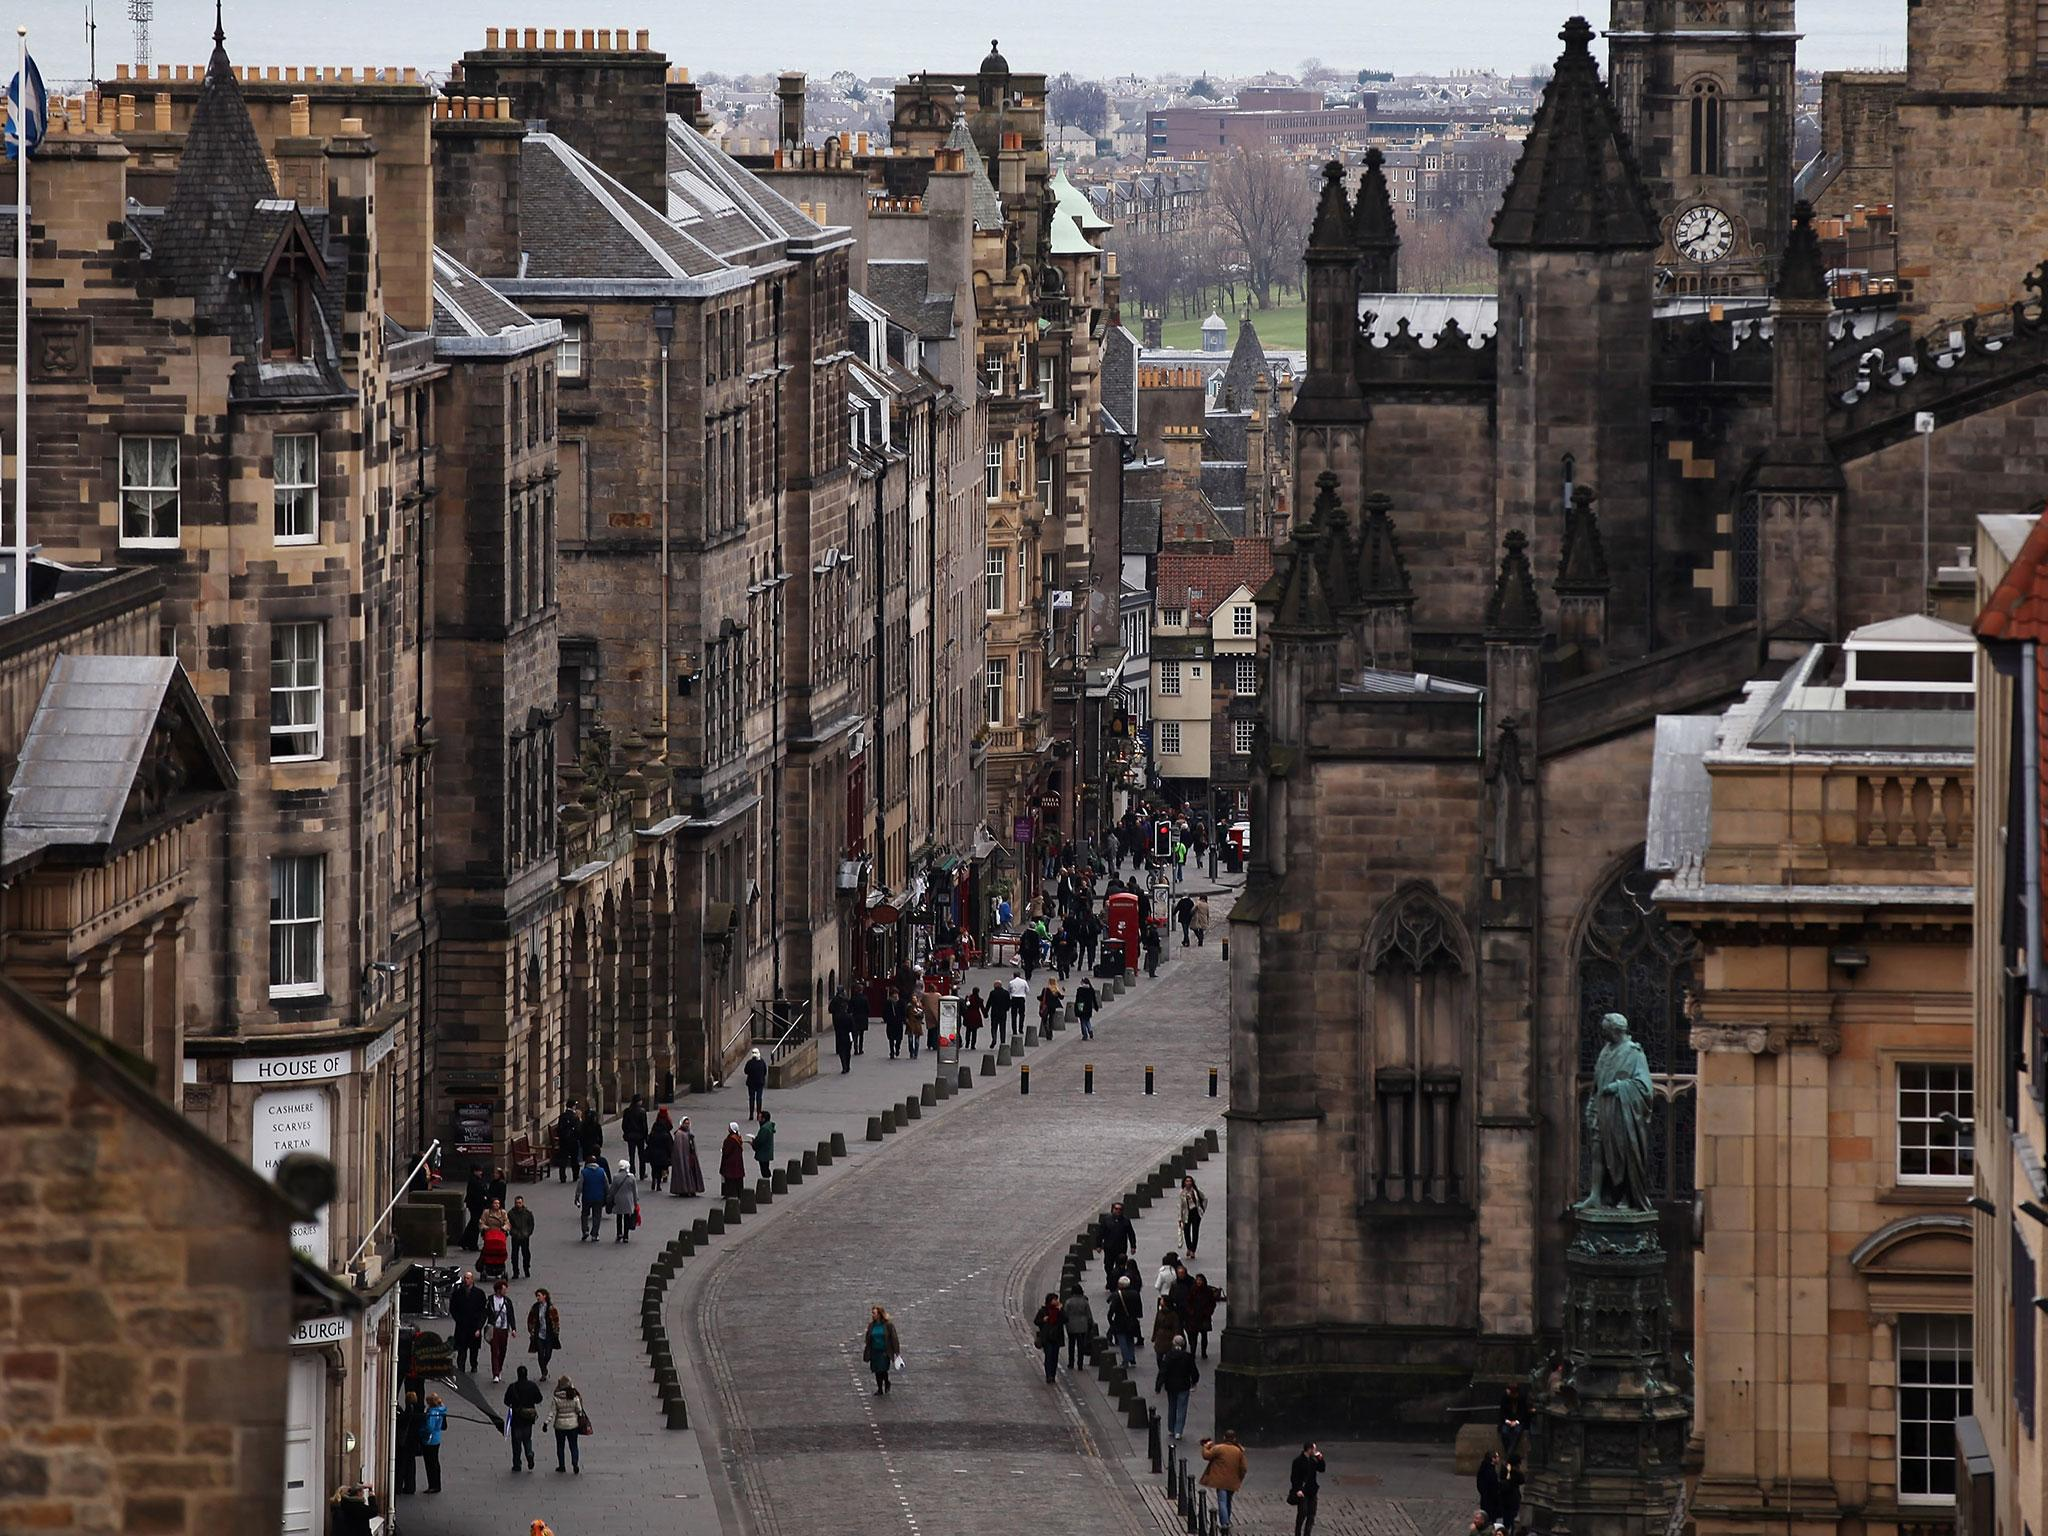 16. Edinburgh, Scotland